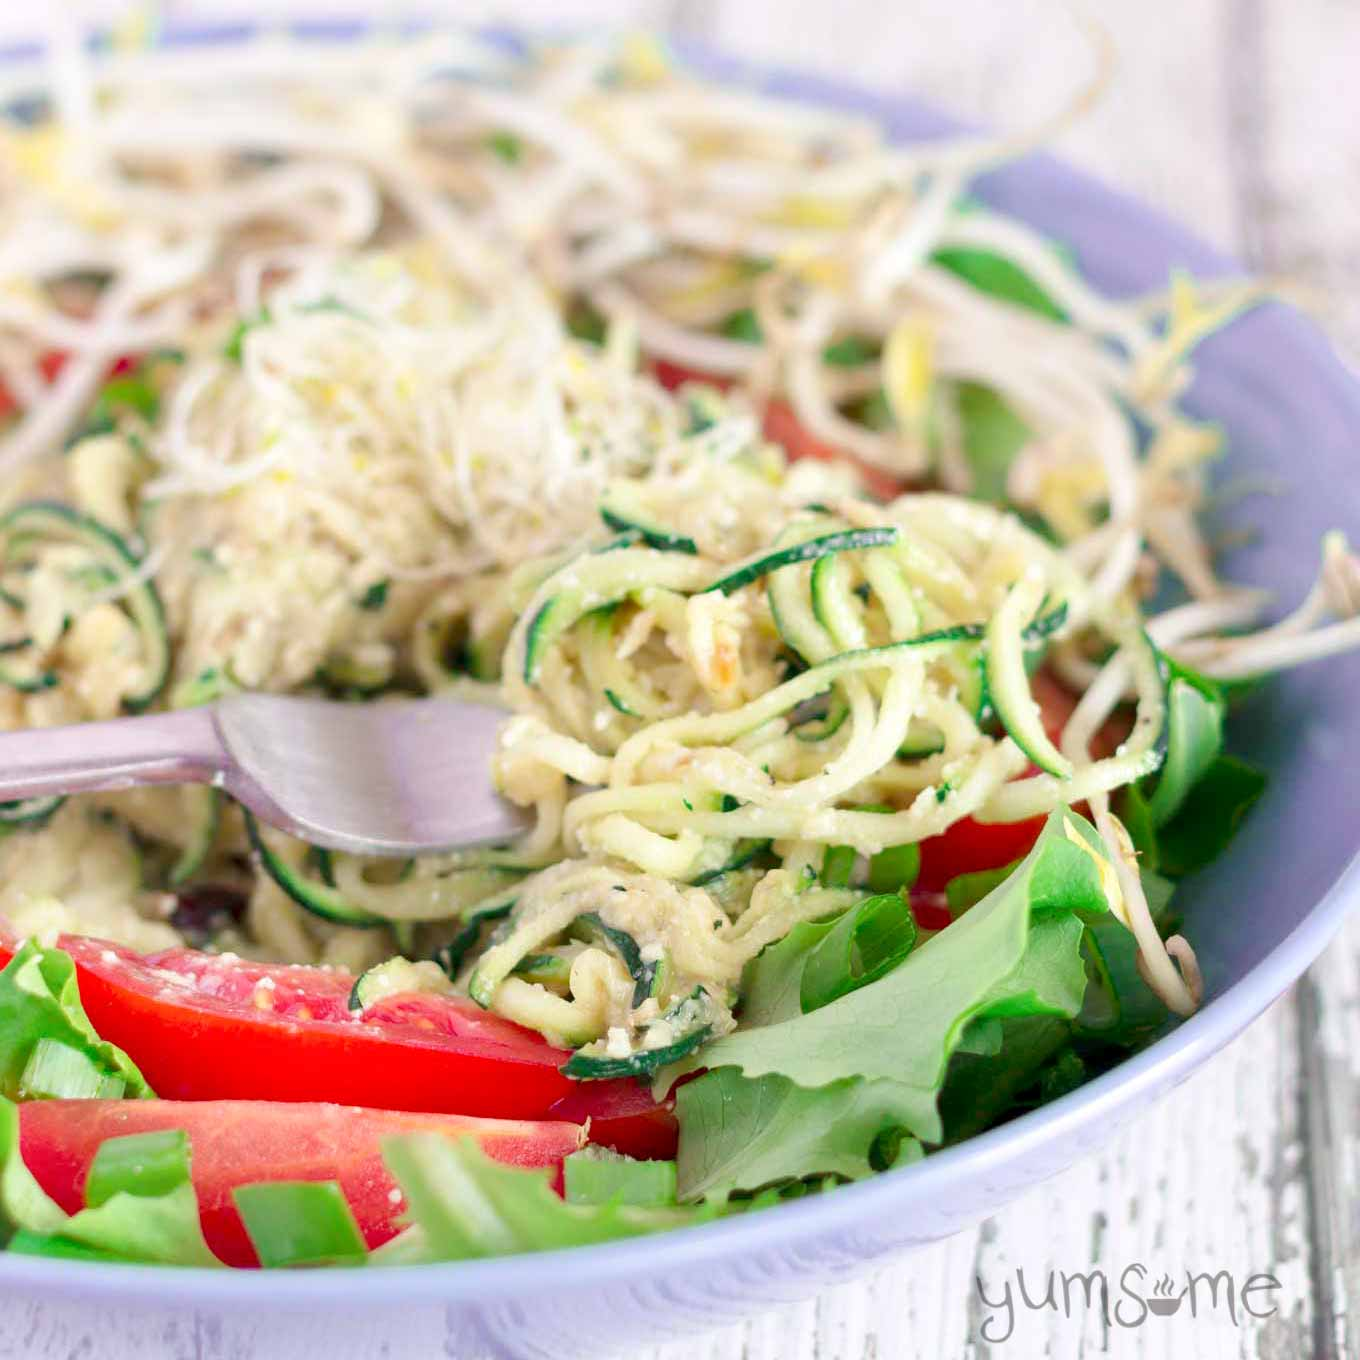 vegan zucchini noodles with parmesan and a green salad | yumsome.com